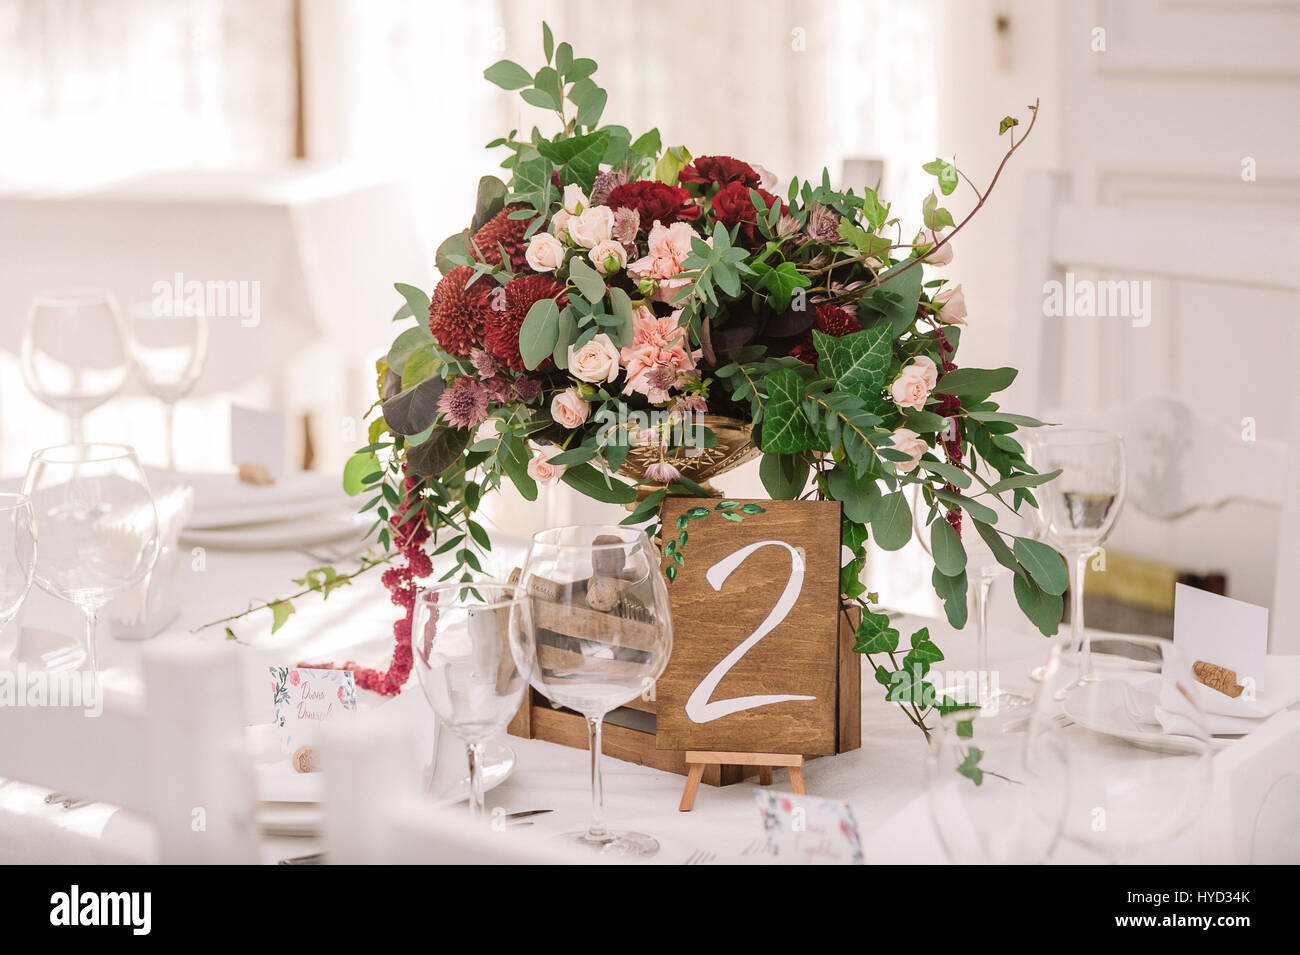 Wedding Table Decoration With The Red And Pink Flowers And Wooden